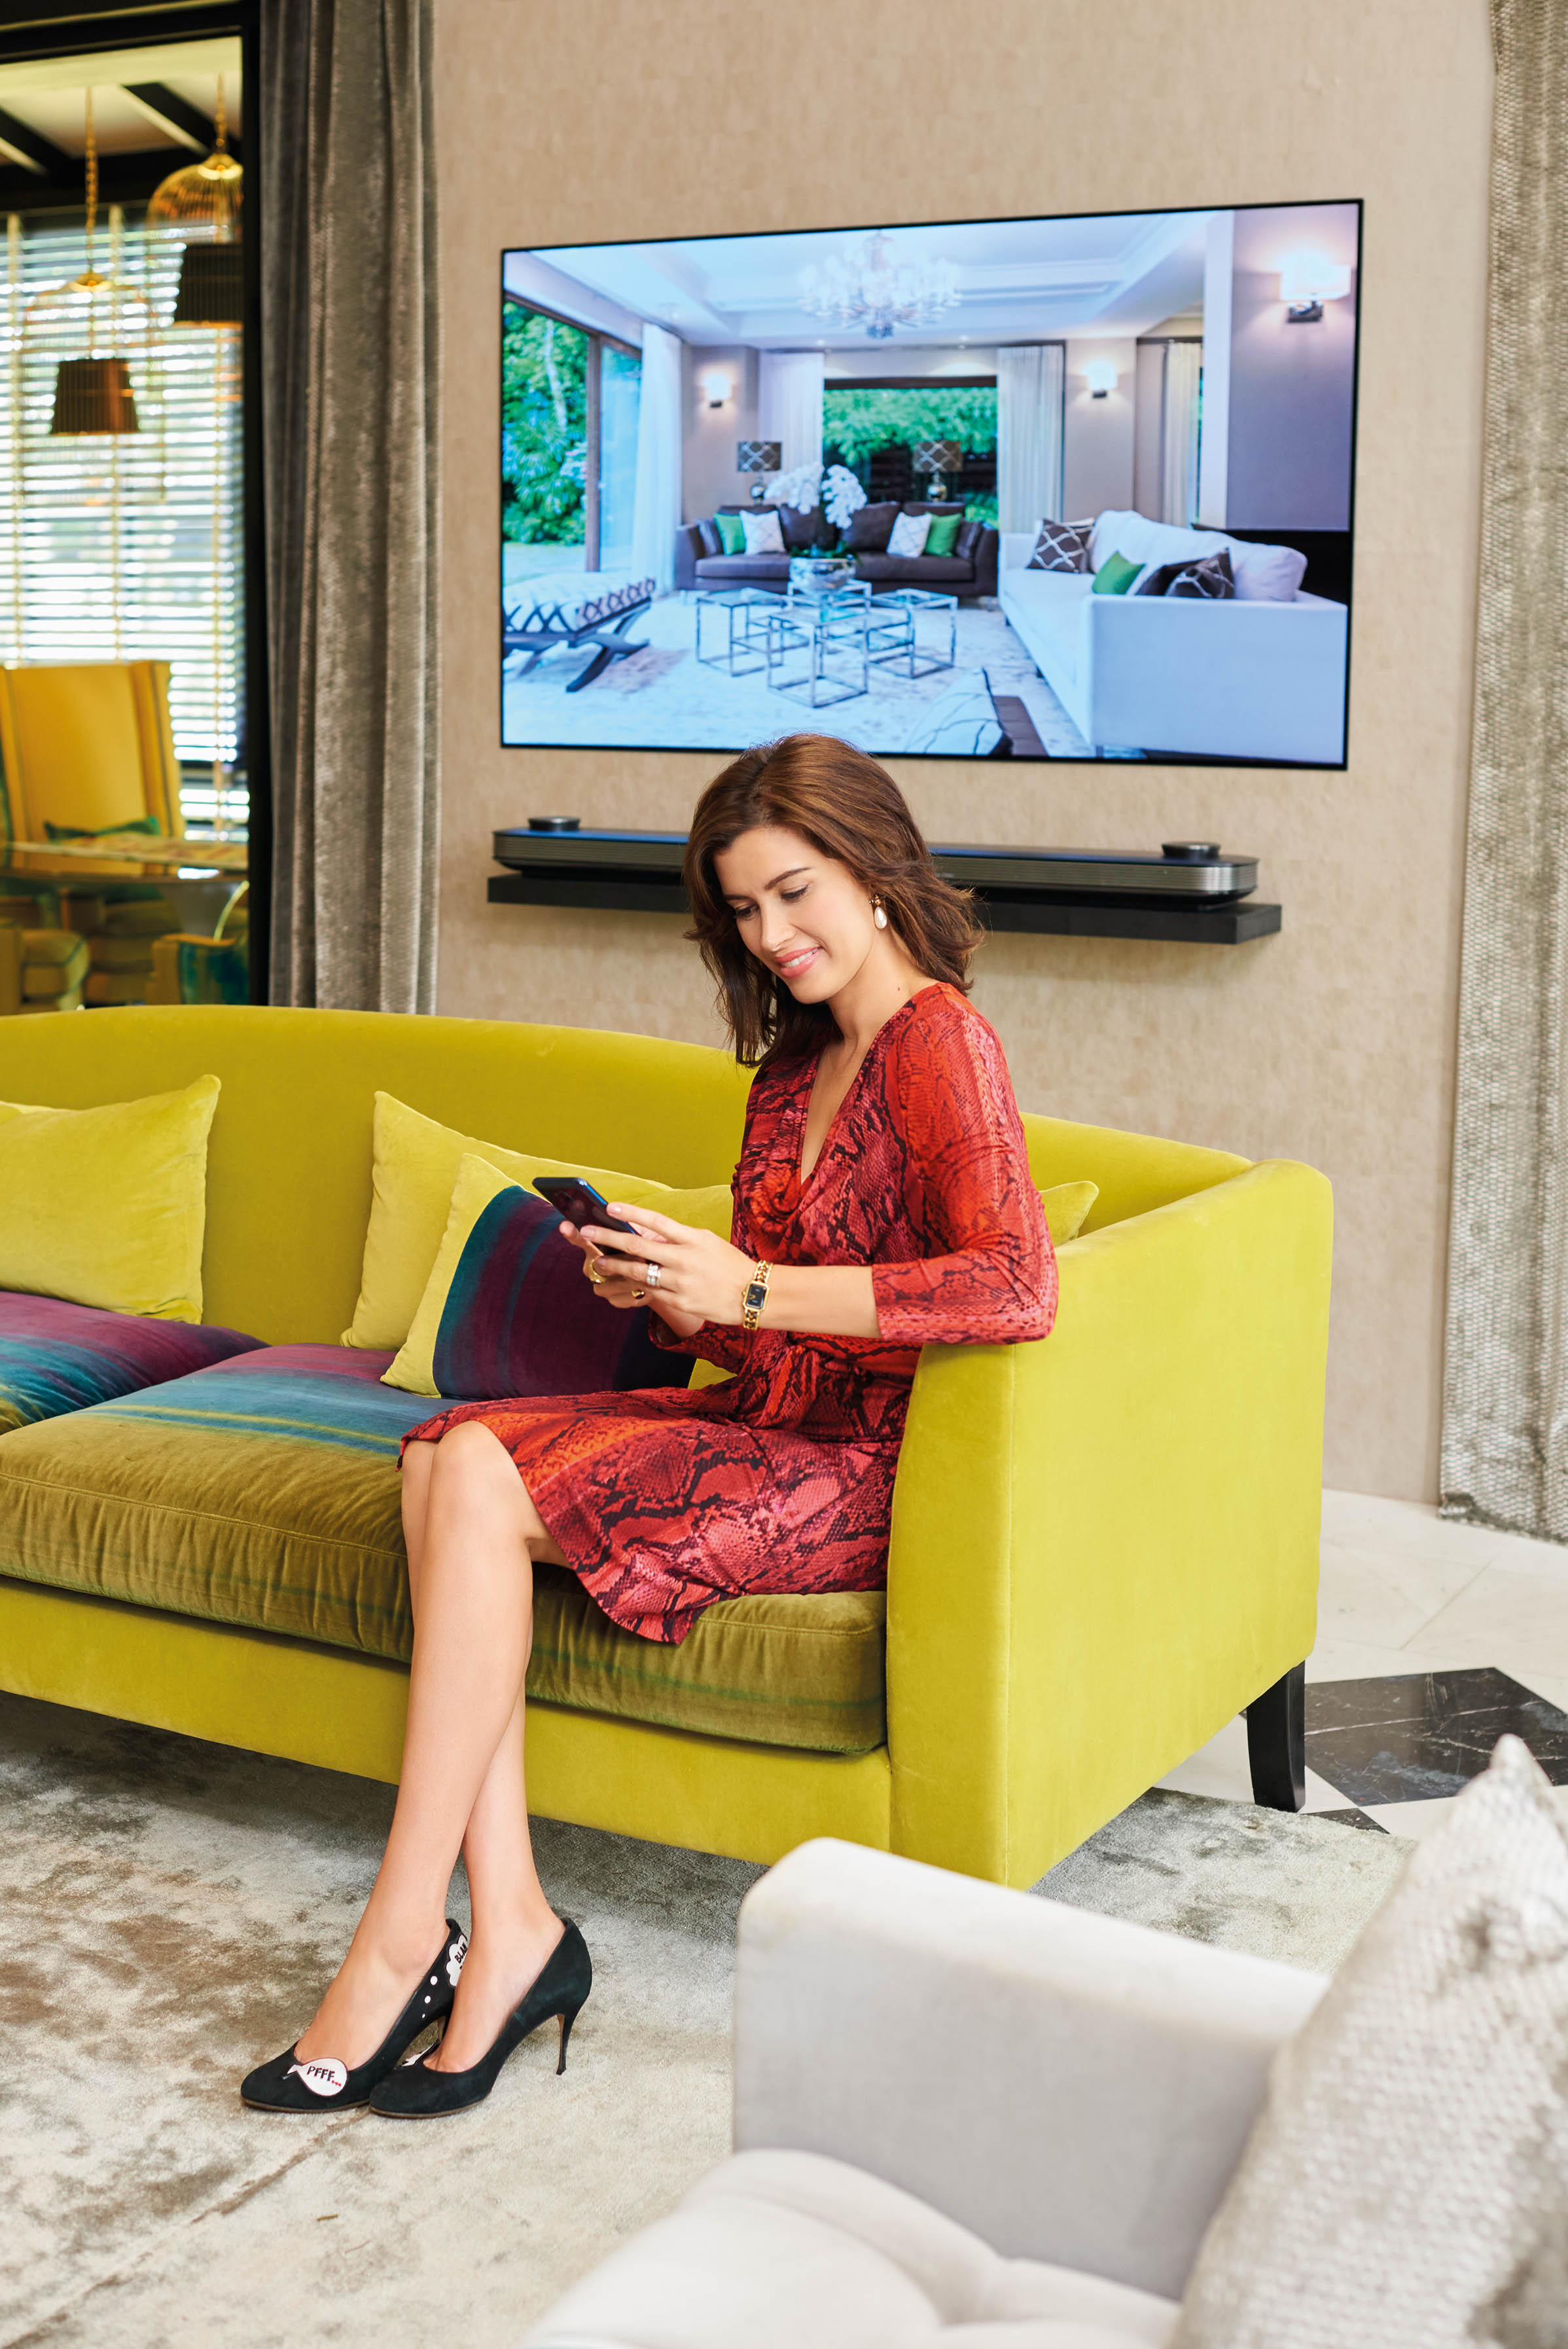 VIDEO: LG SIGNATURE Special — A Design Intervention With Andrea Savage